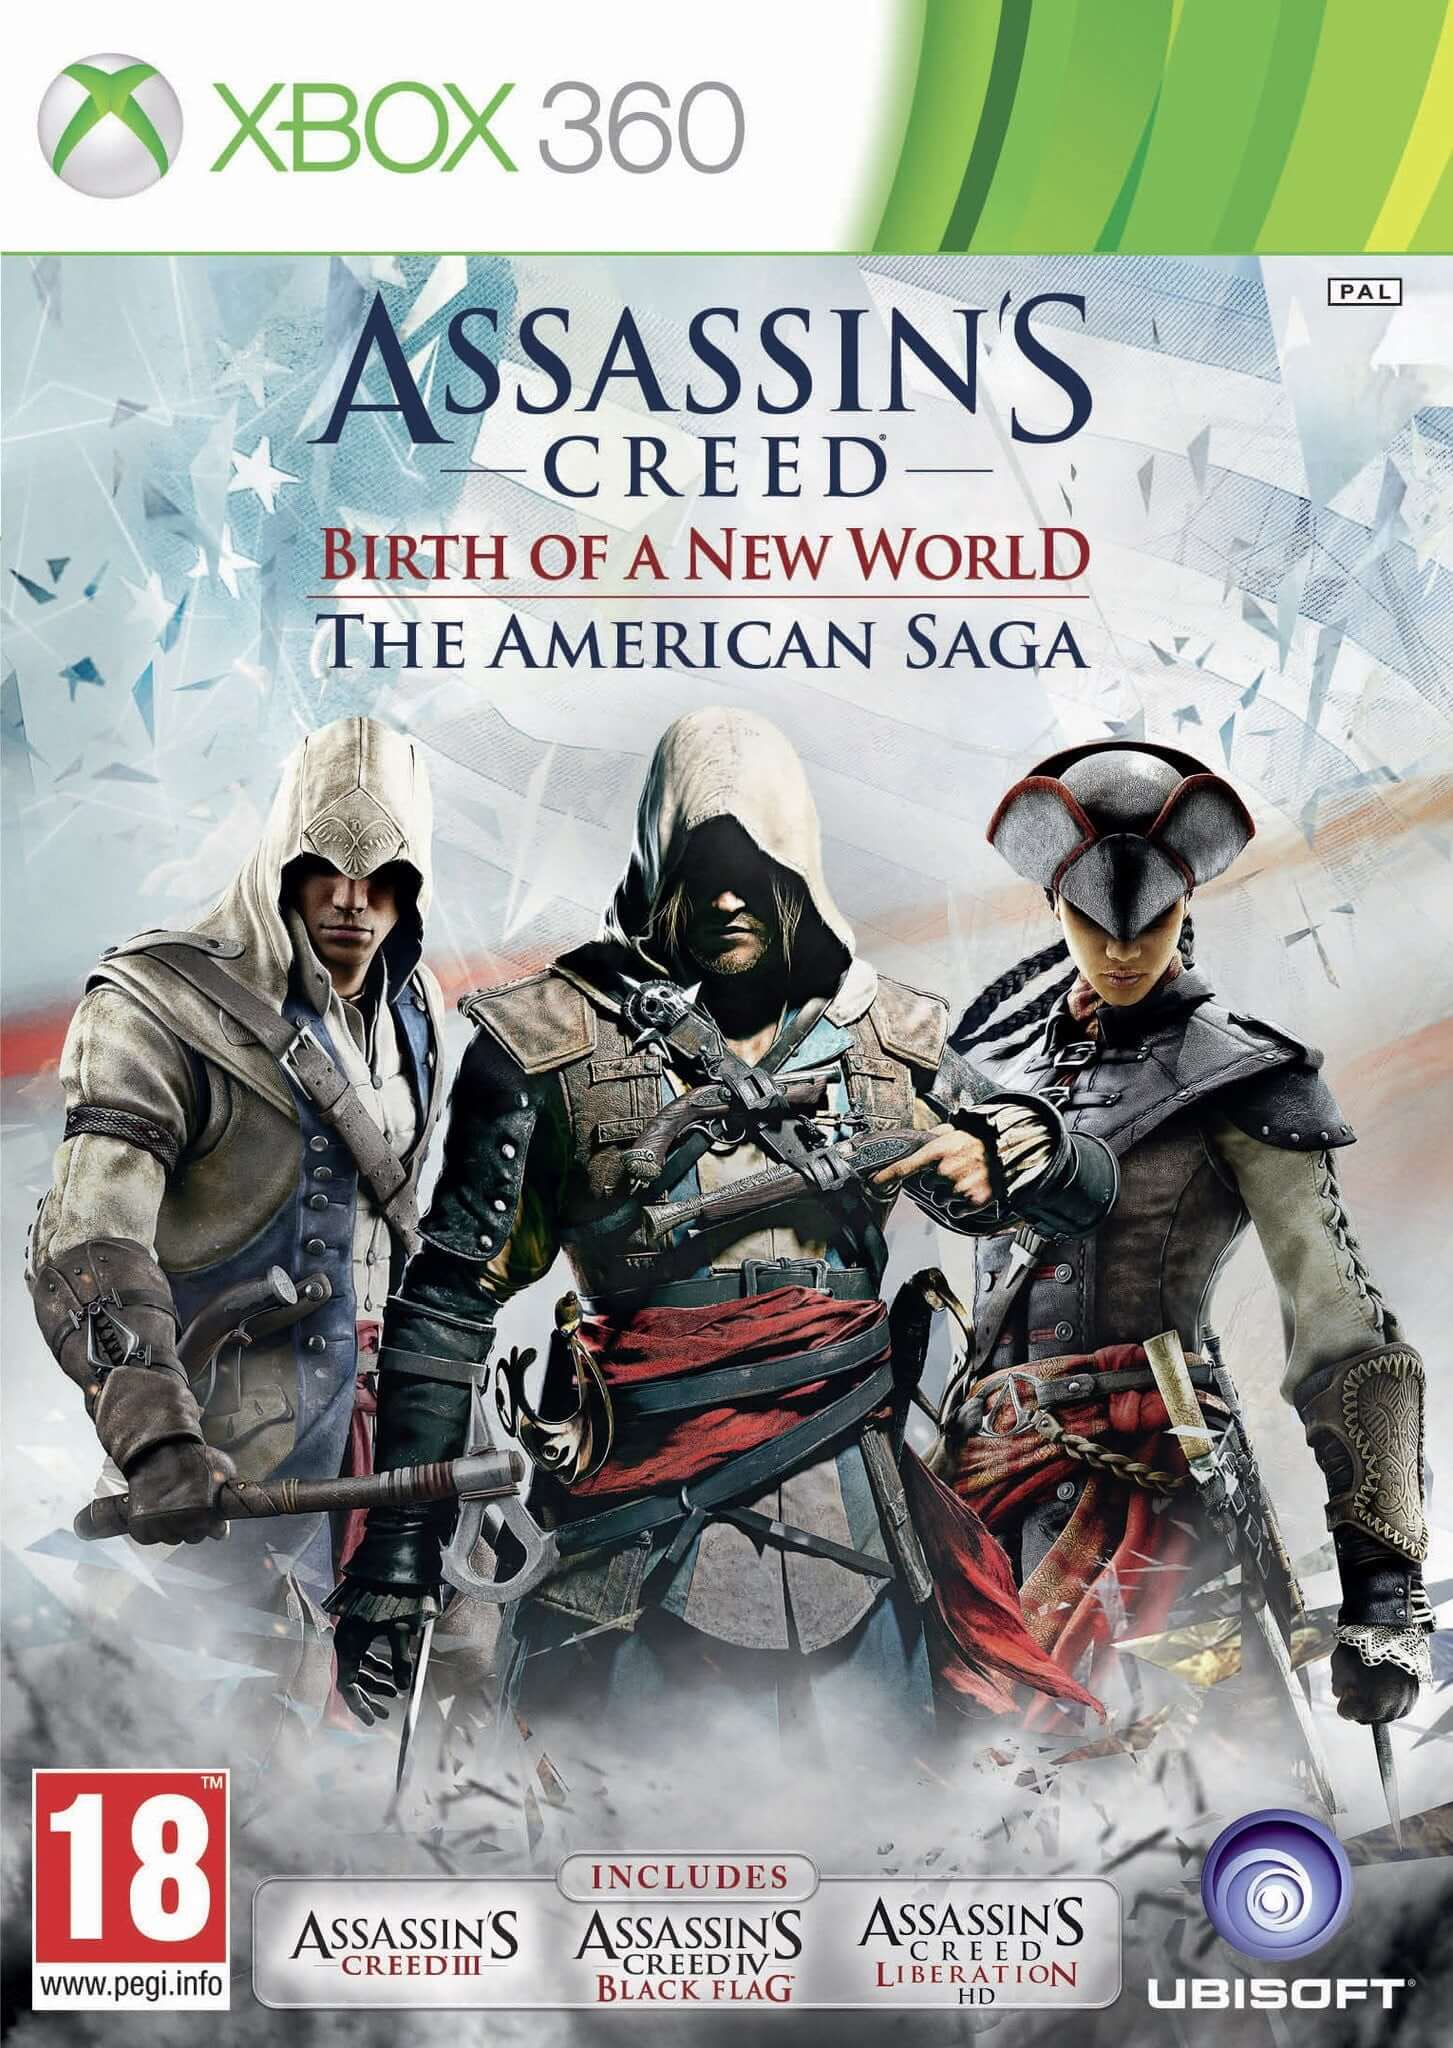 Assassin's Creed Birth Of New World (XBOX 360) XBOX 360 Game - Shamy Stores